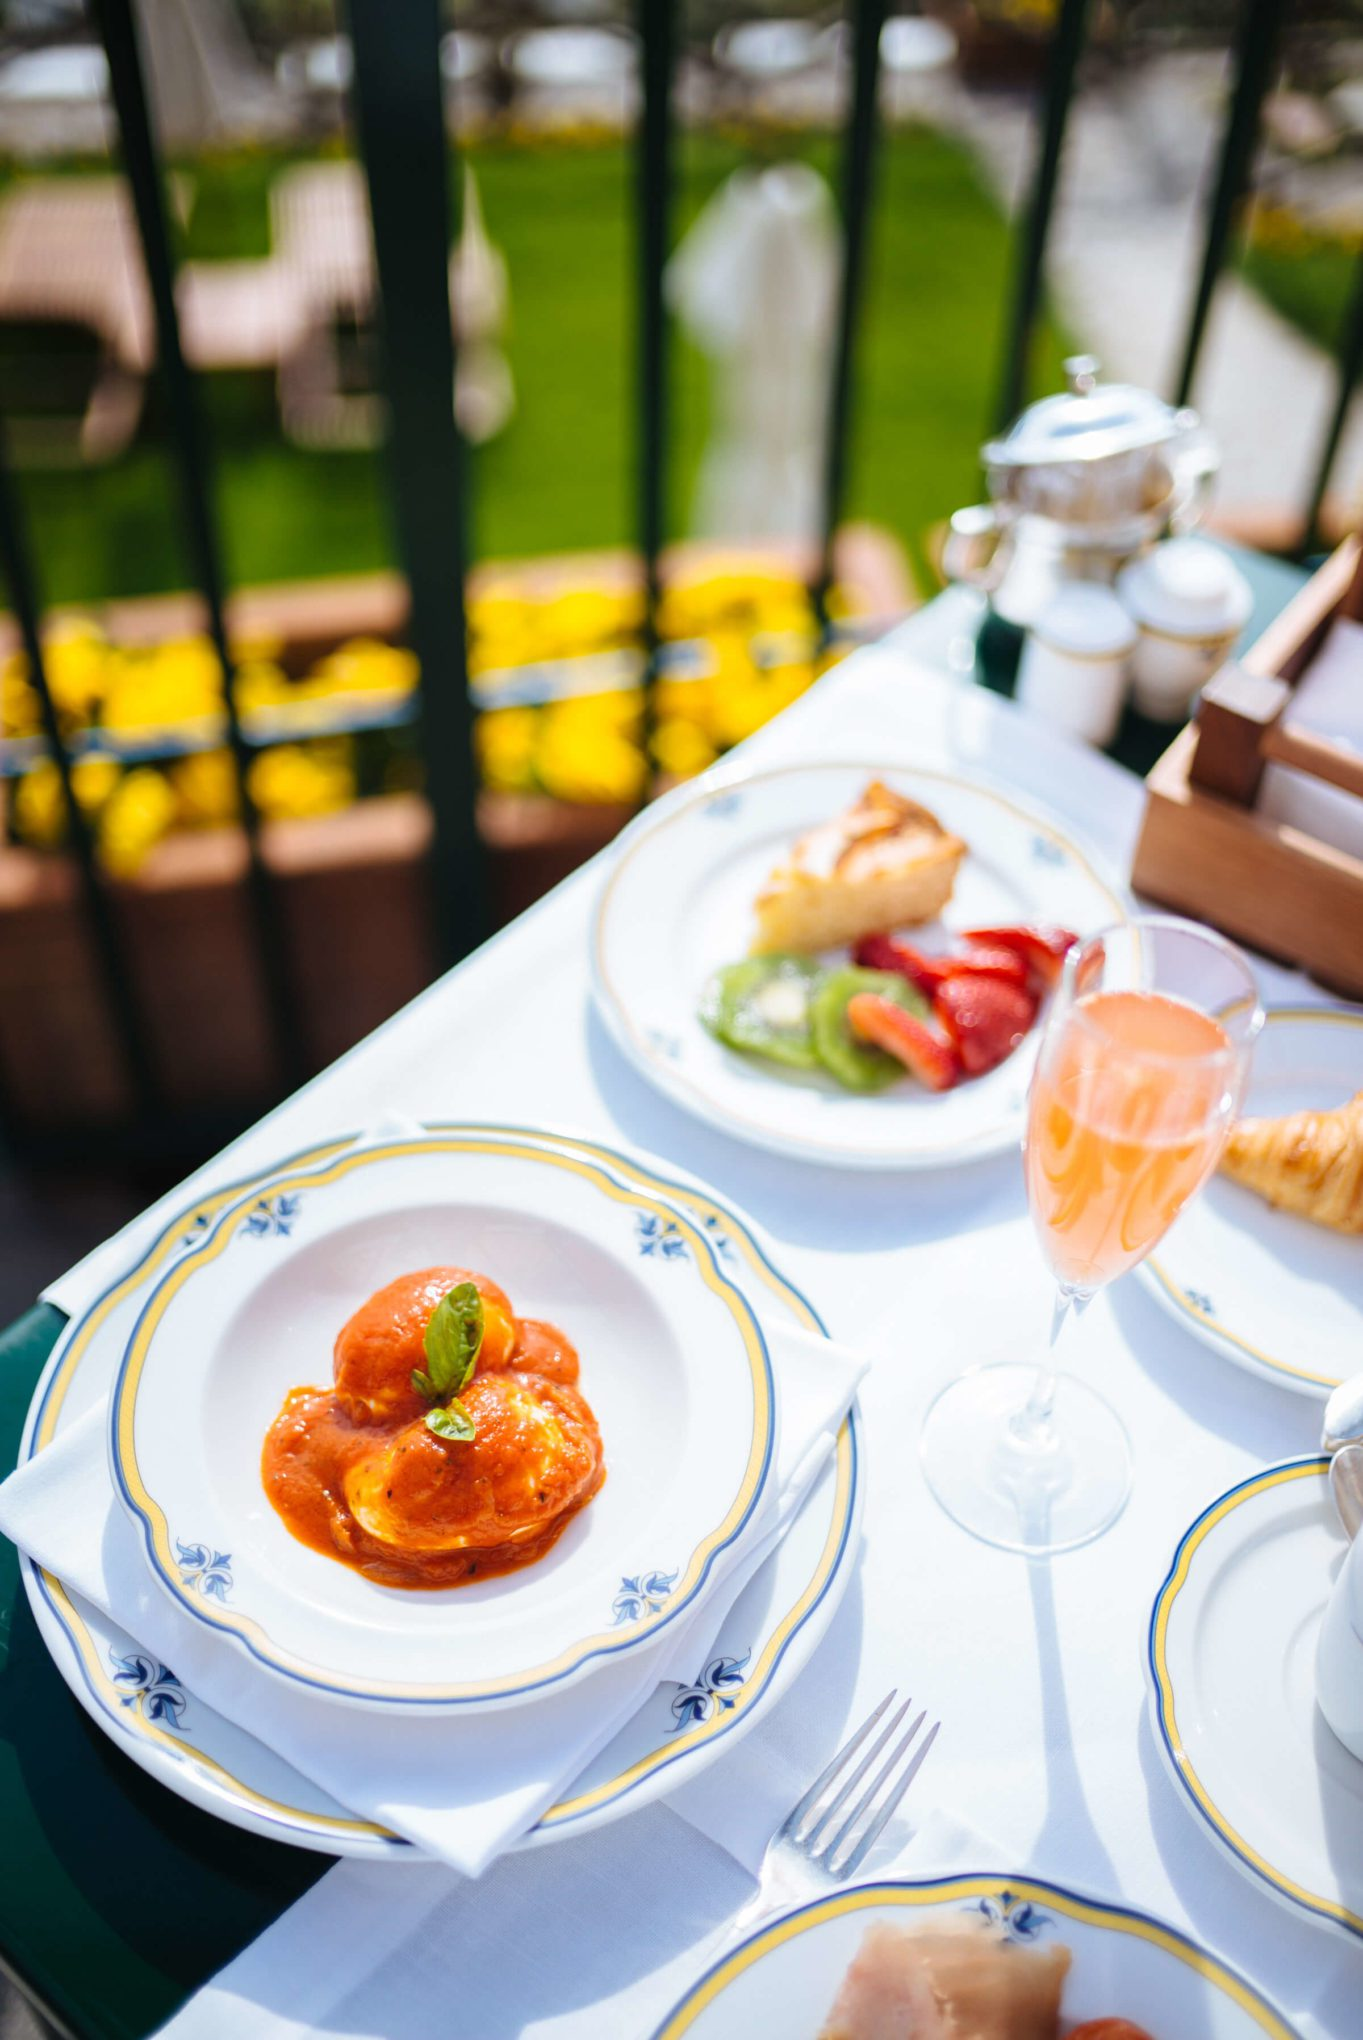 Breakfast includes eggs cooked to order at Palazzo Avino in Ravello, Italy, The Taste Edit